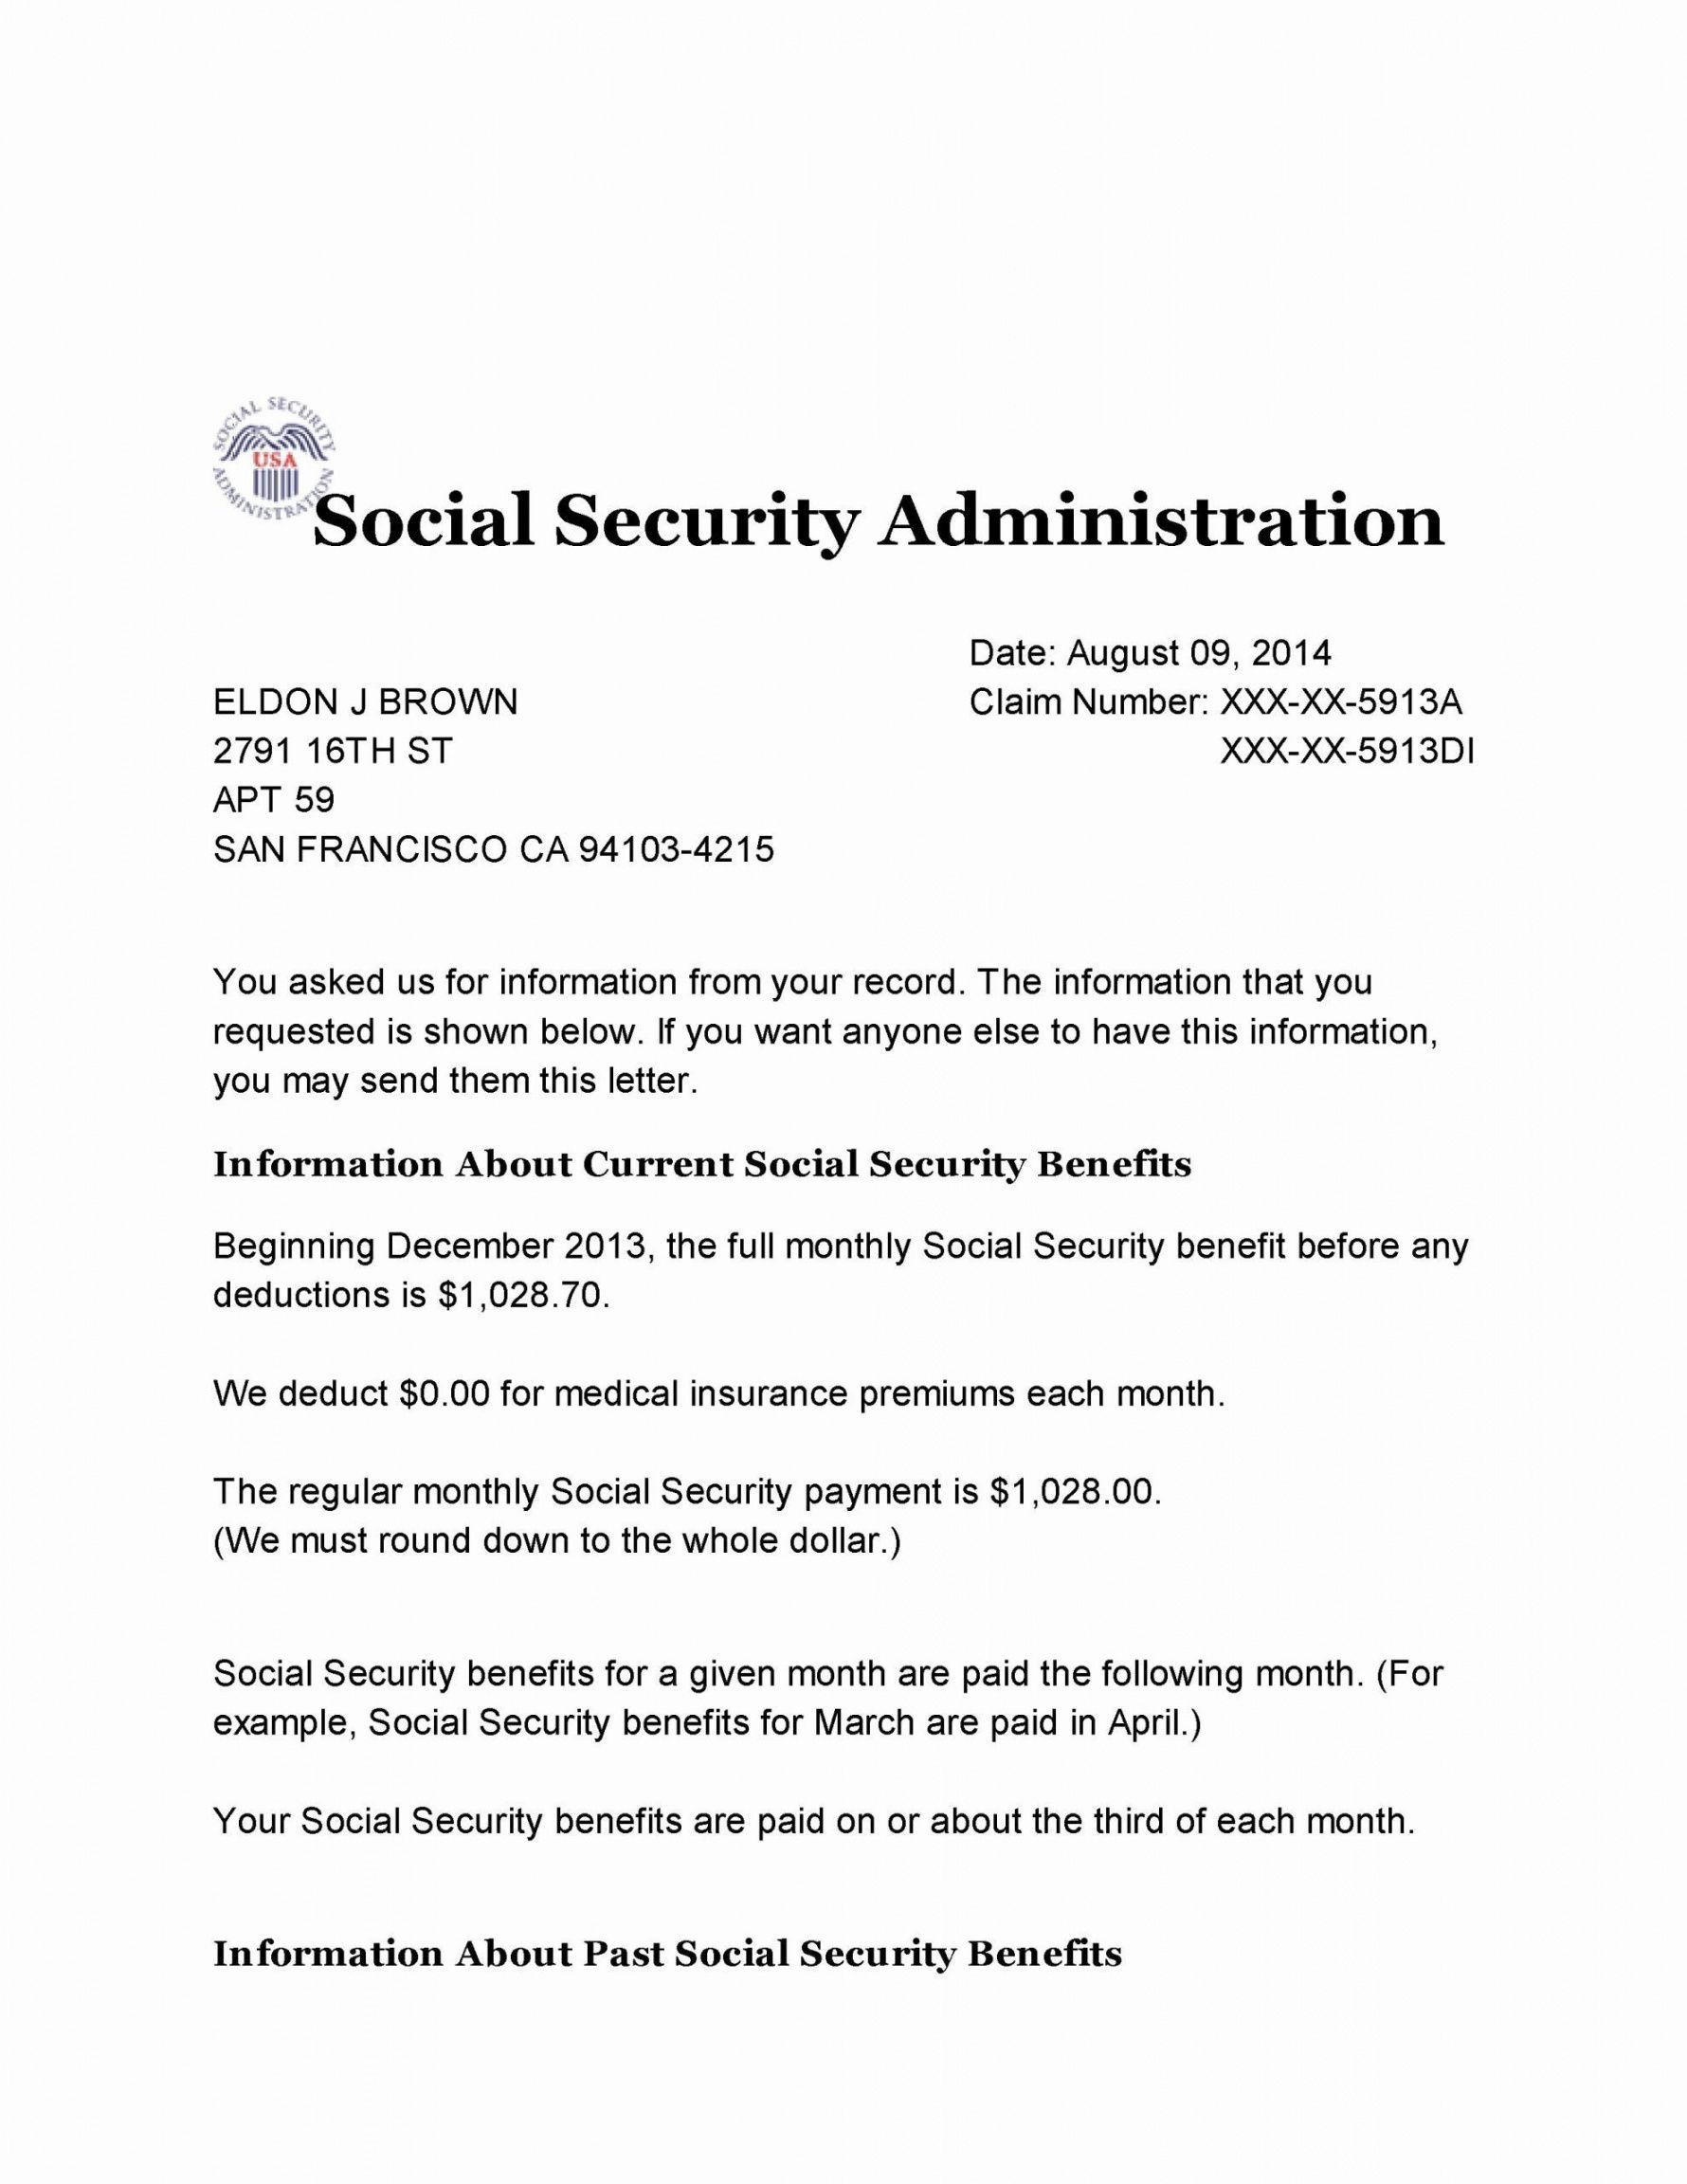 Professional Social Security Number Verification Letter In 2021 Lettering Letter Templates Social Security Benefits